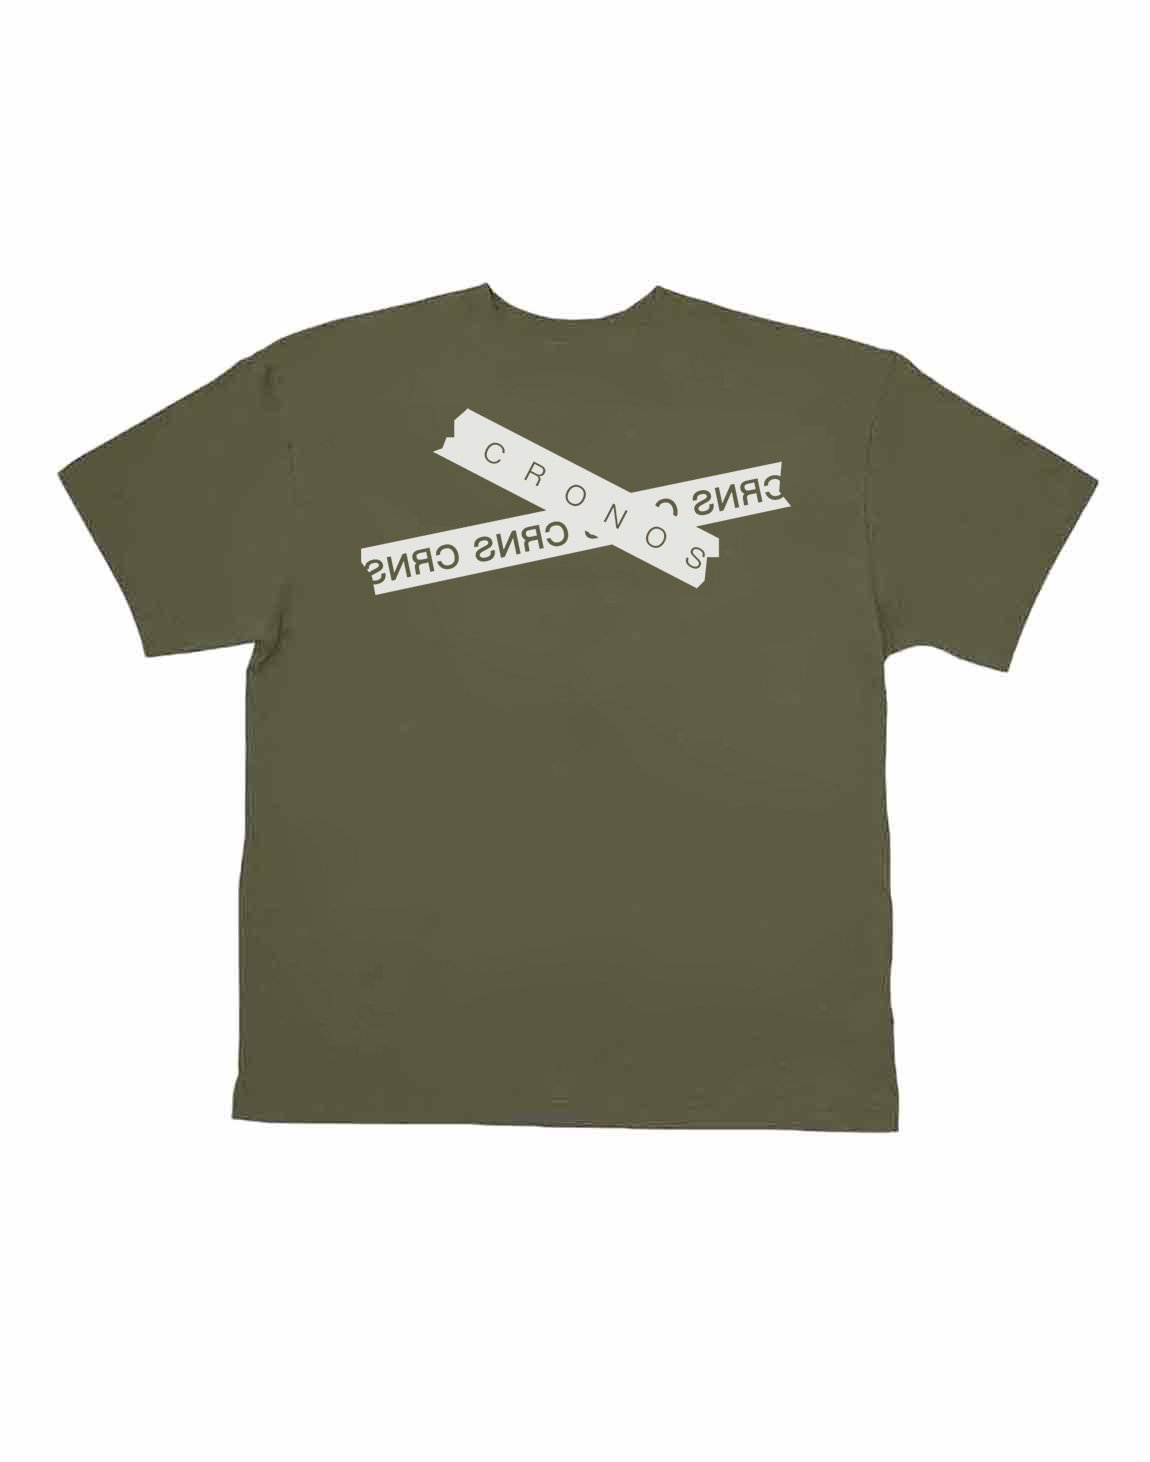 <img class='new_mark_img1' src='https://img.shop-pro.jp/img/new/icons1.gif' style='border:none;display:inline;margin:0px;padding:0px;width:auto;' />CRONOS TAPE LOGO OVER SIZE T-SHIRTS【KHAKI】